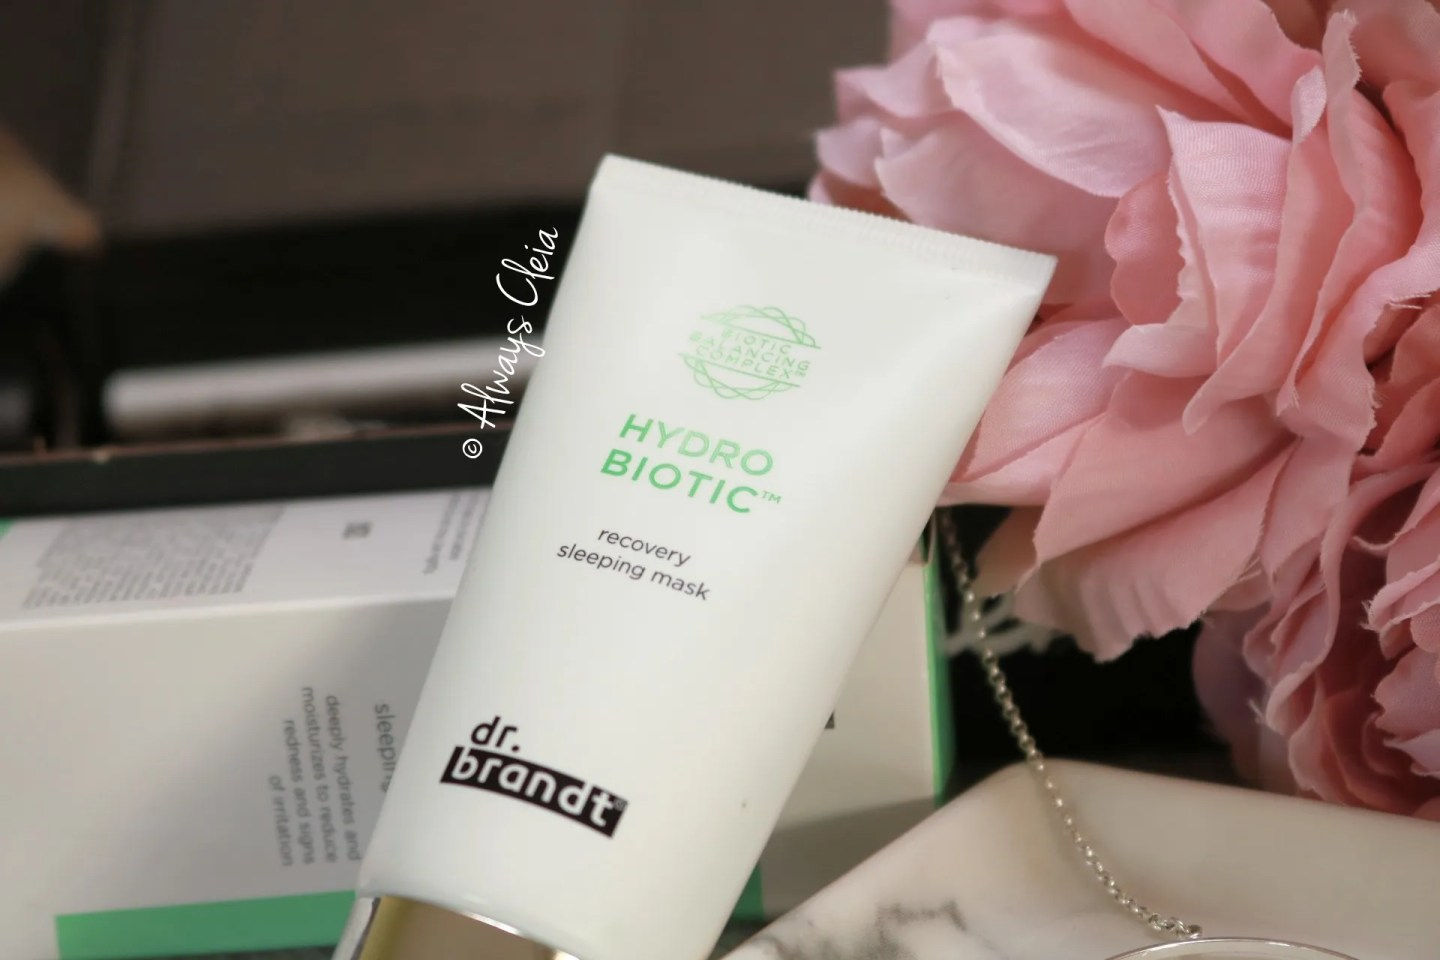 Dr Brandt Hydro Biotic Sleeping Mask